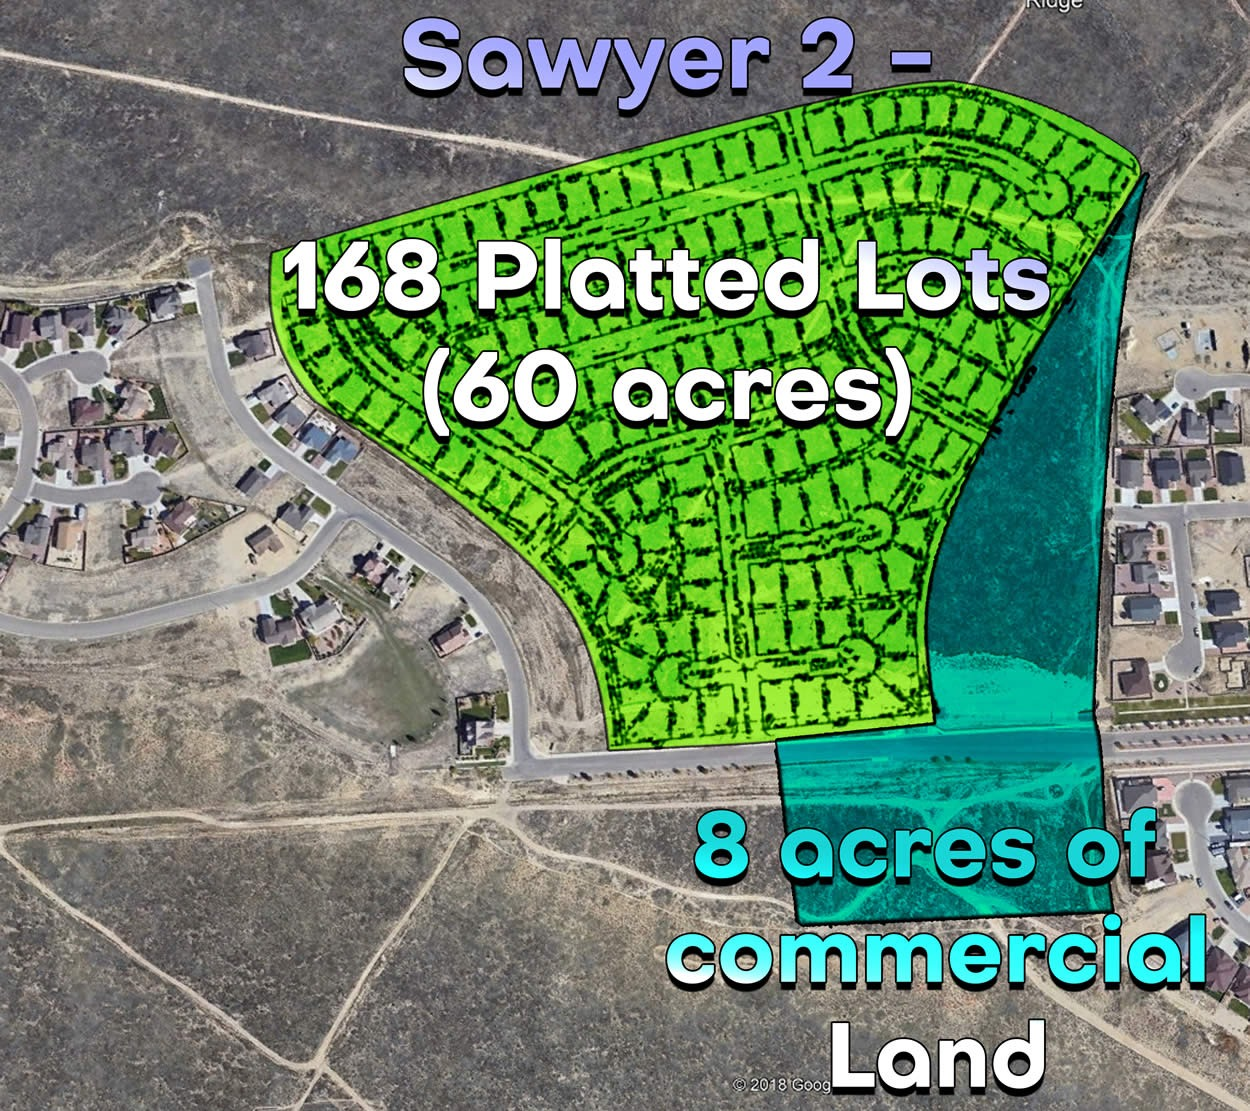 Sawyer Ridge Phase 2 Land Development